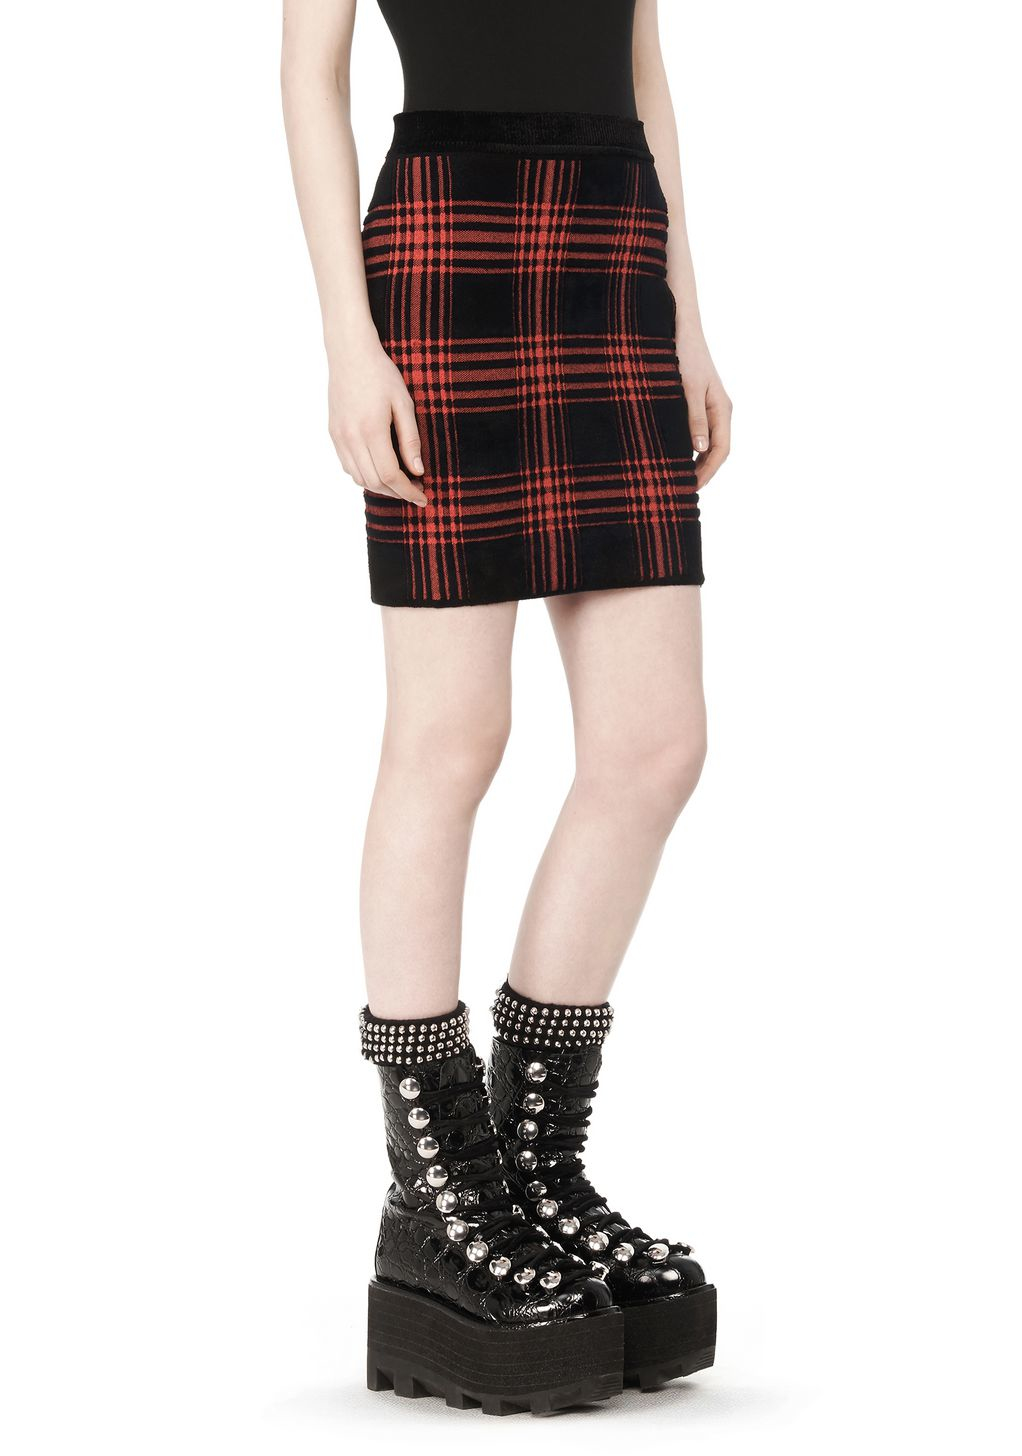 Red Plaid Skirt - Sears - Online & In-Store Shopping